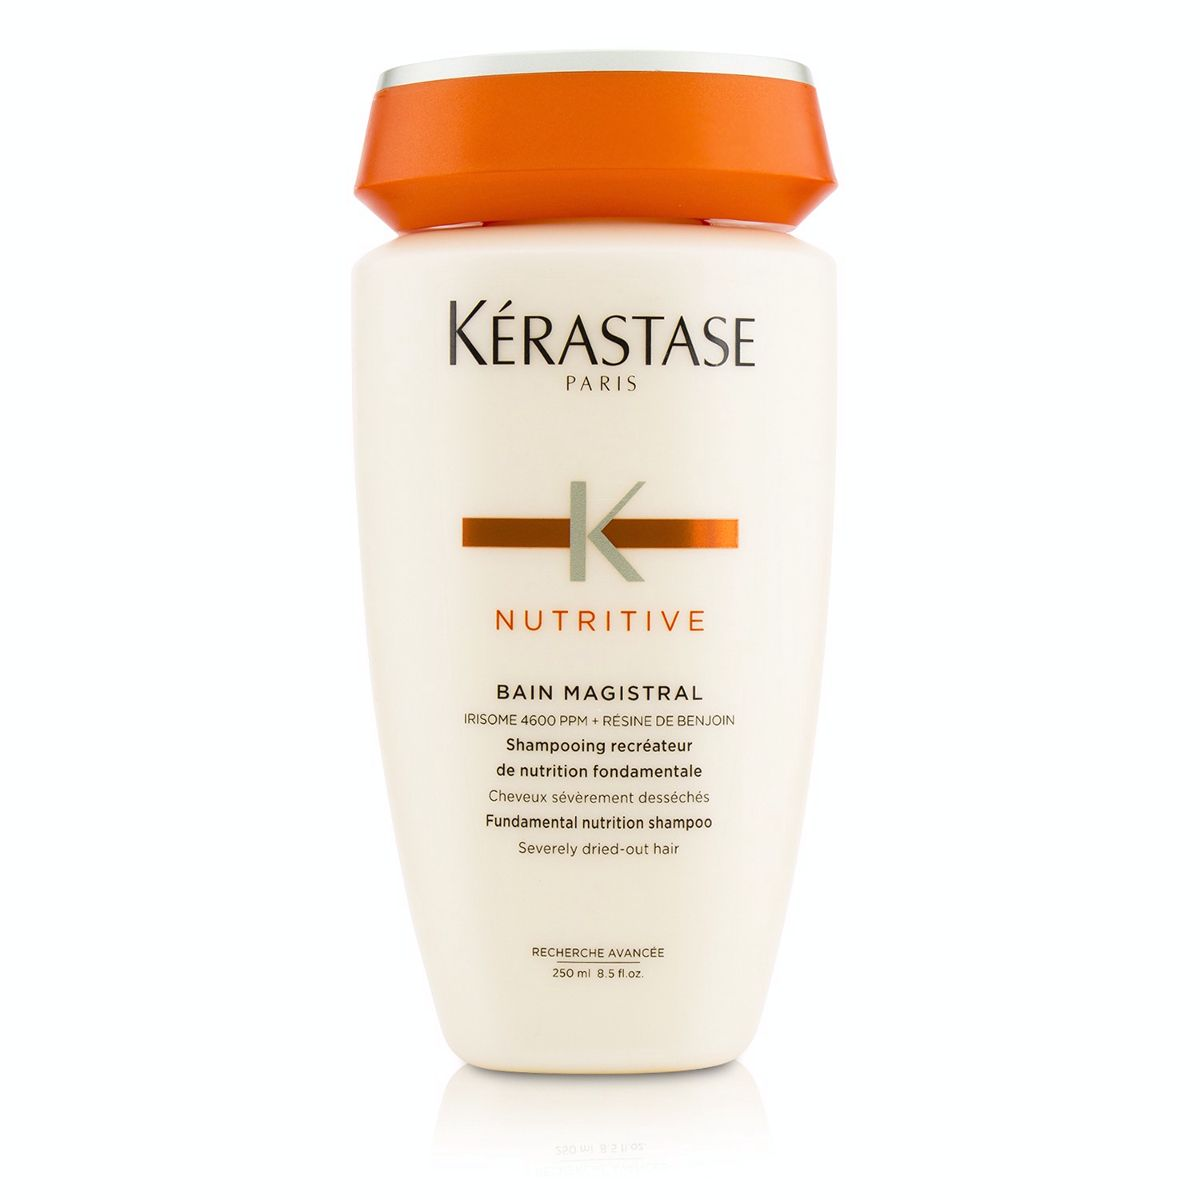 Nutritive Bain Magistral Fundamental Nutrition Shampoo (Severely Dried-Out Hair)  250ml/8.5oz